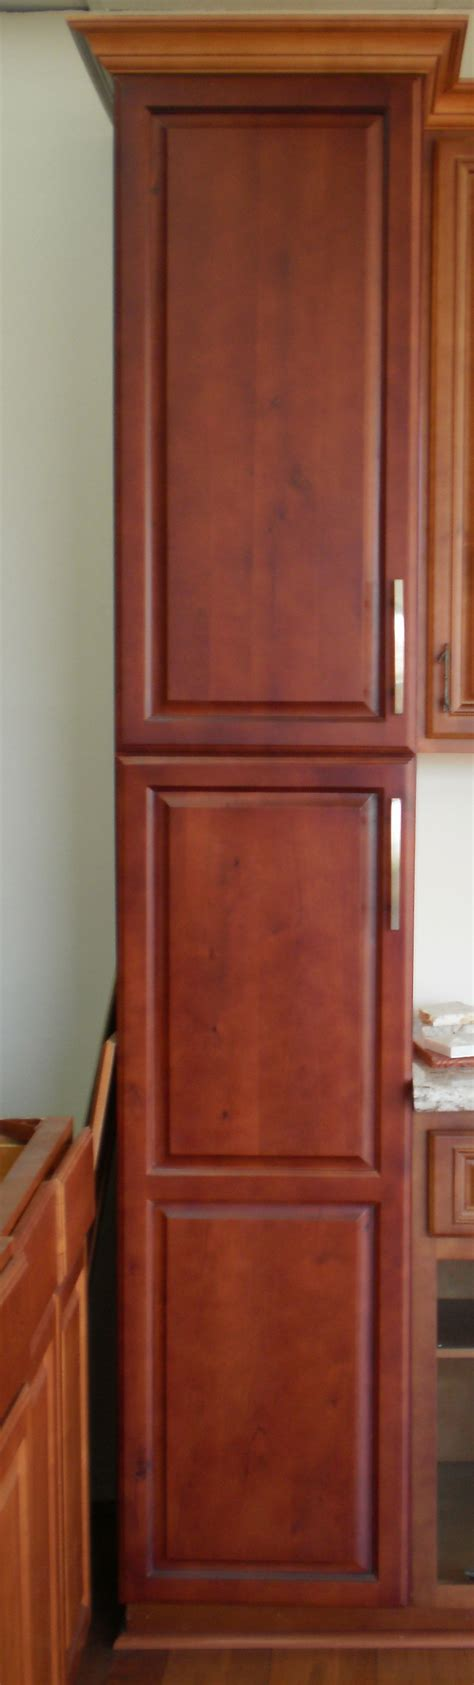 Maple Kitchen Pantry Cabinet by Cherry Maple Pantry Myt Kitchen Cabinet Design